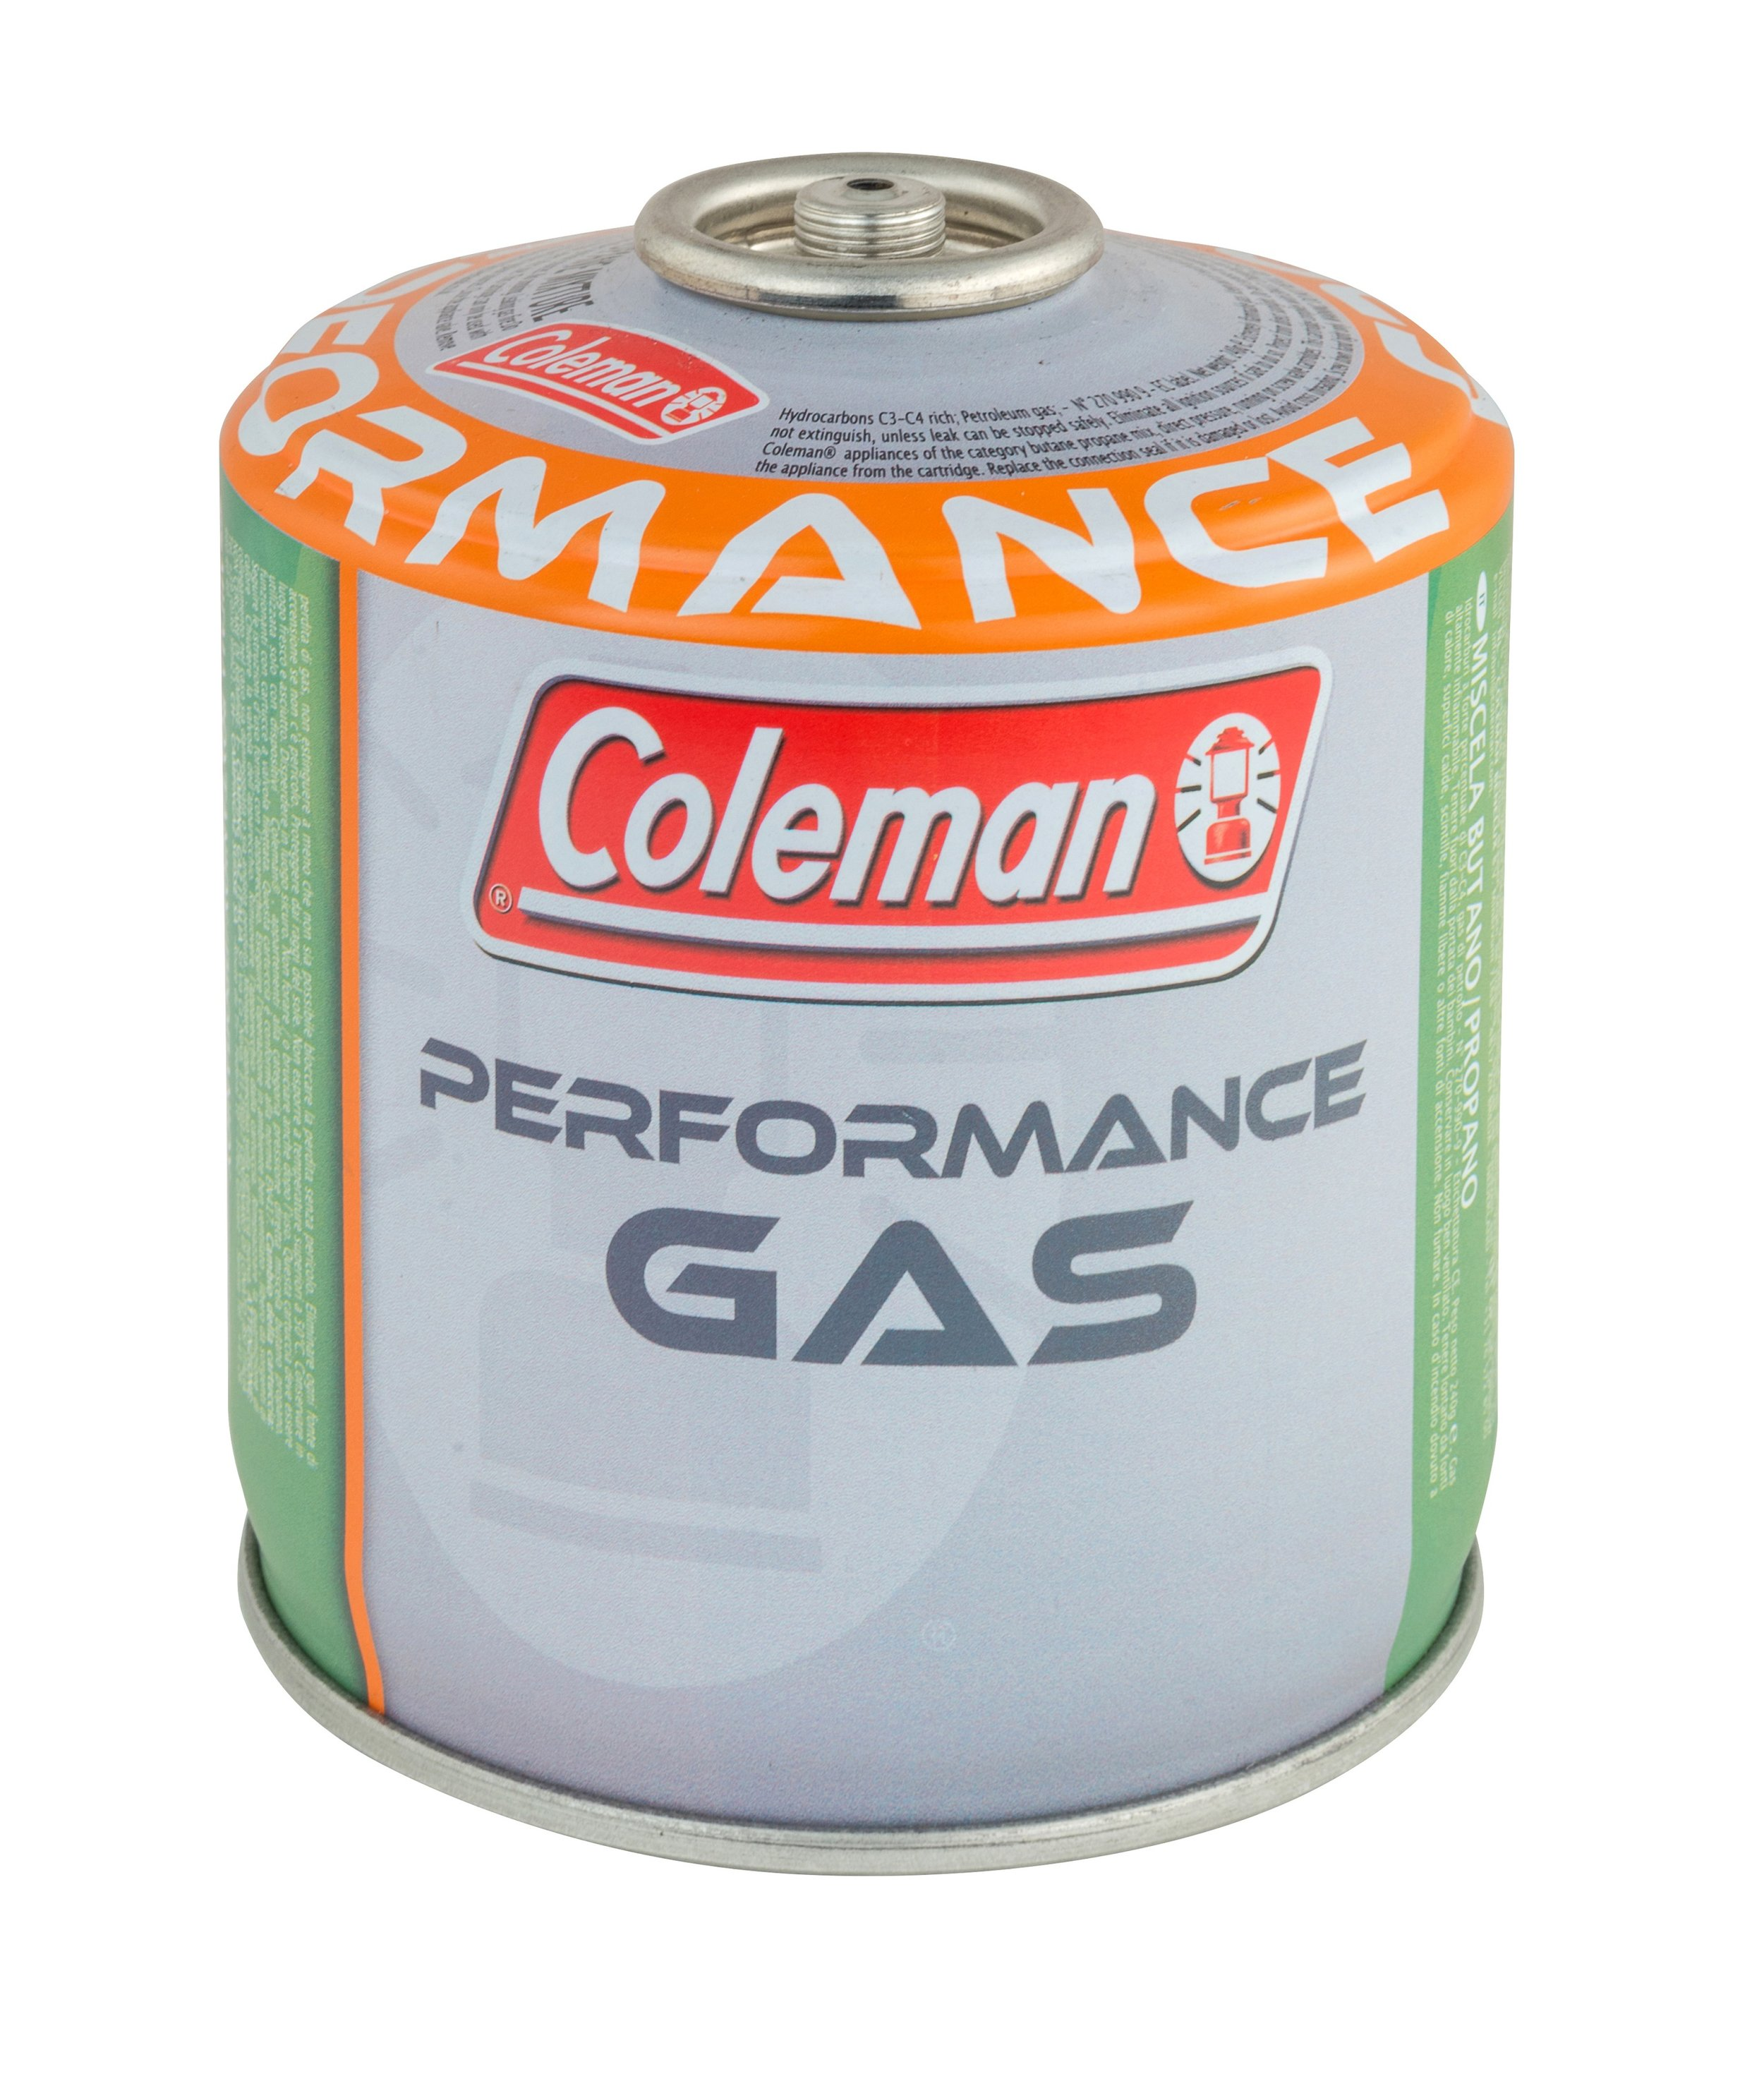 3000004539 - C300 Performance Gas.jpg